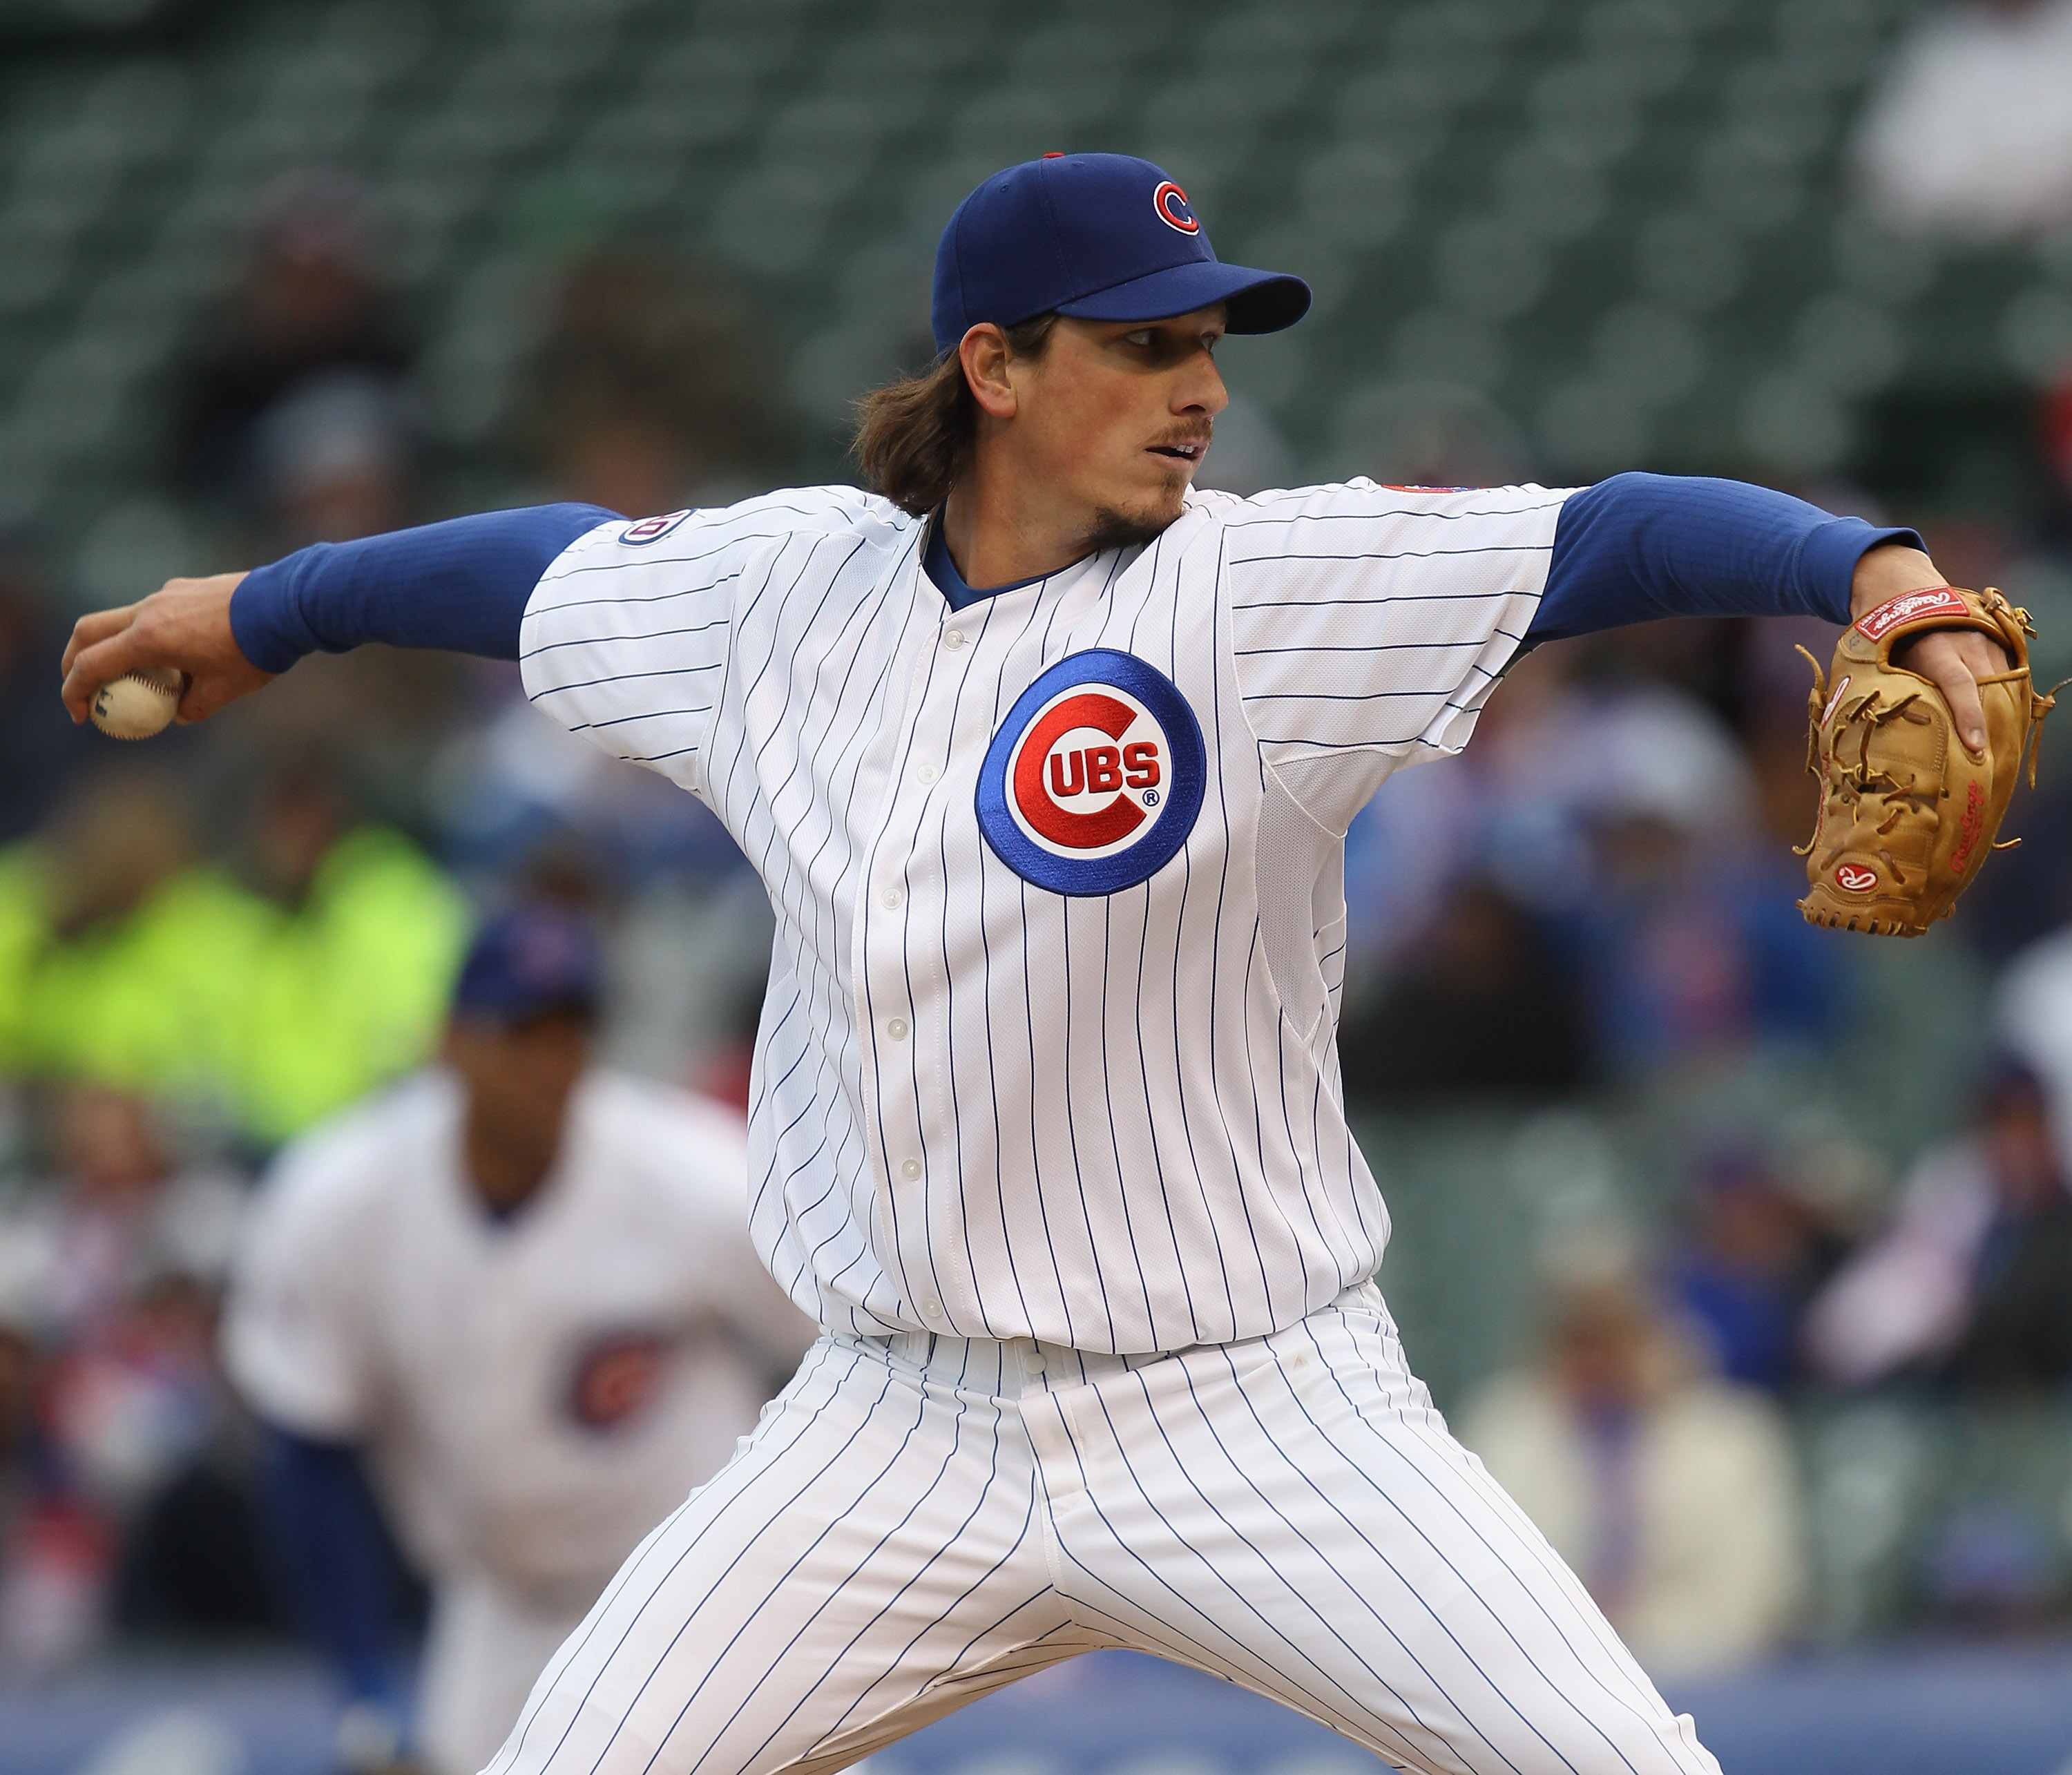 CHICAGO, IL - APRIL 20: Jeff Samardzija #29 of the Chicago Cubs pitches in the 10th inning against the San Diego Padres at Wrigley Field on April 20, 2011 in Chicago, Illinois. The Cubs defeated the Padres 2-1 in 11 innings. (Photo by Jonathan Daniel/Gett